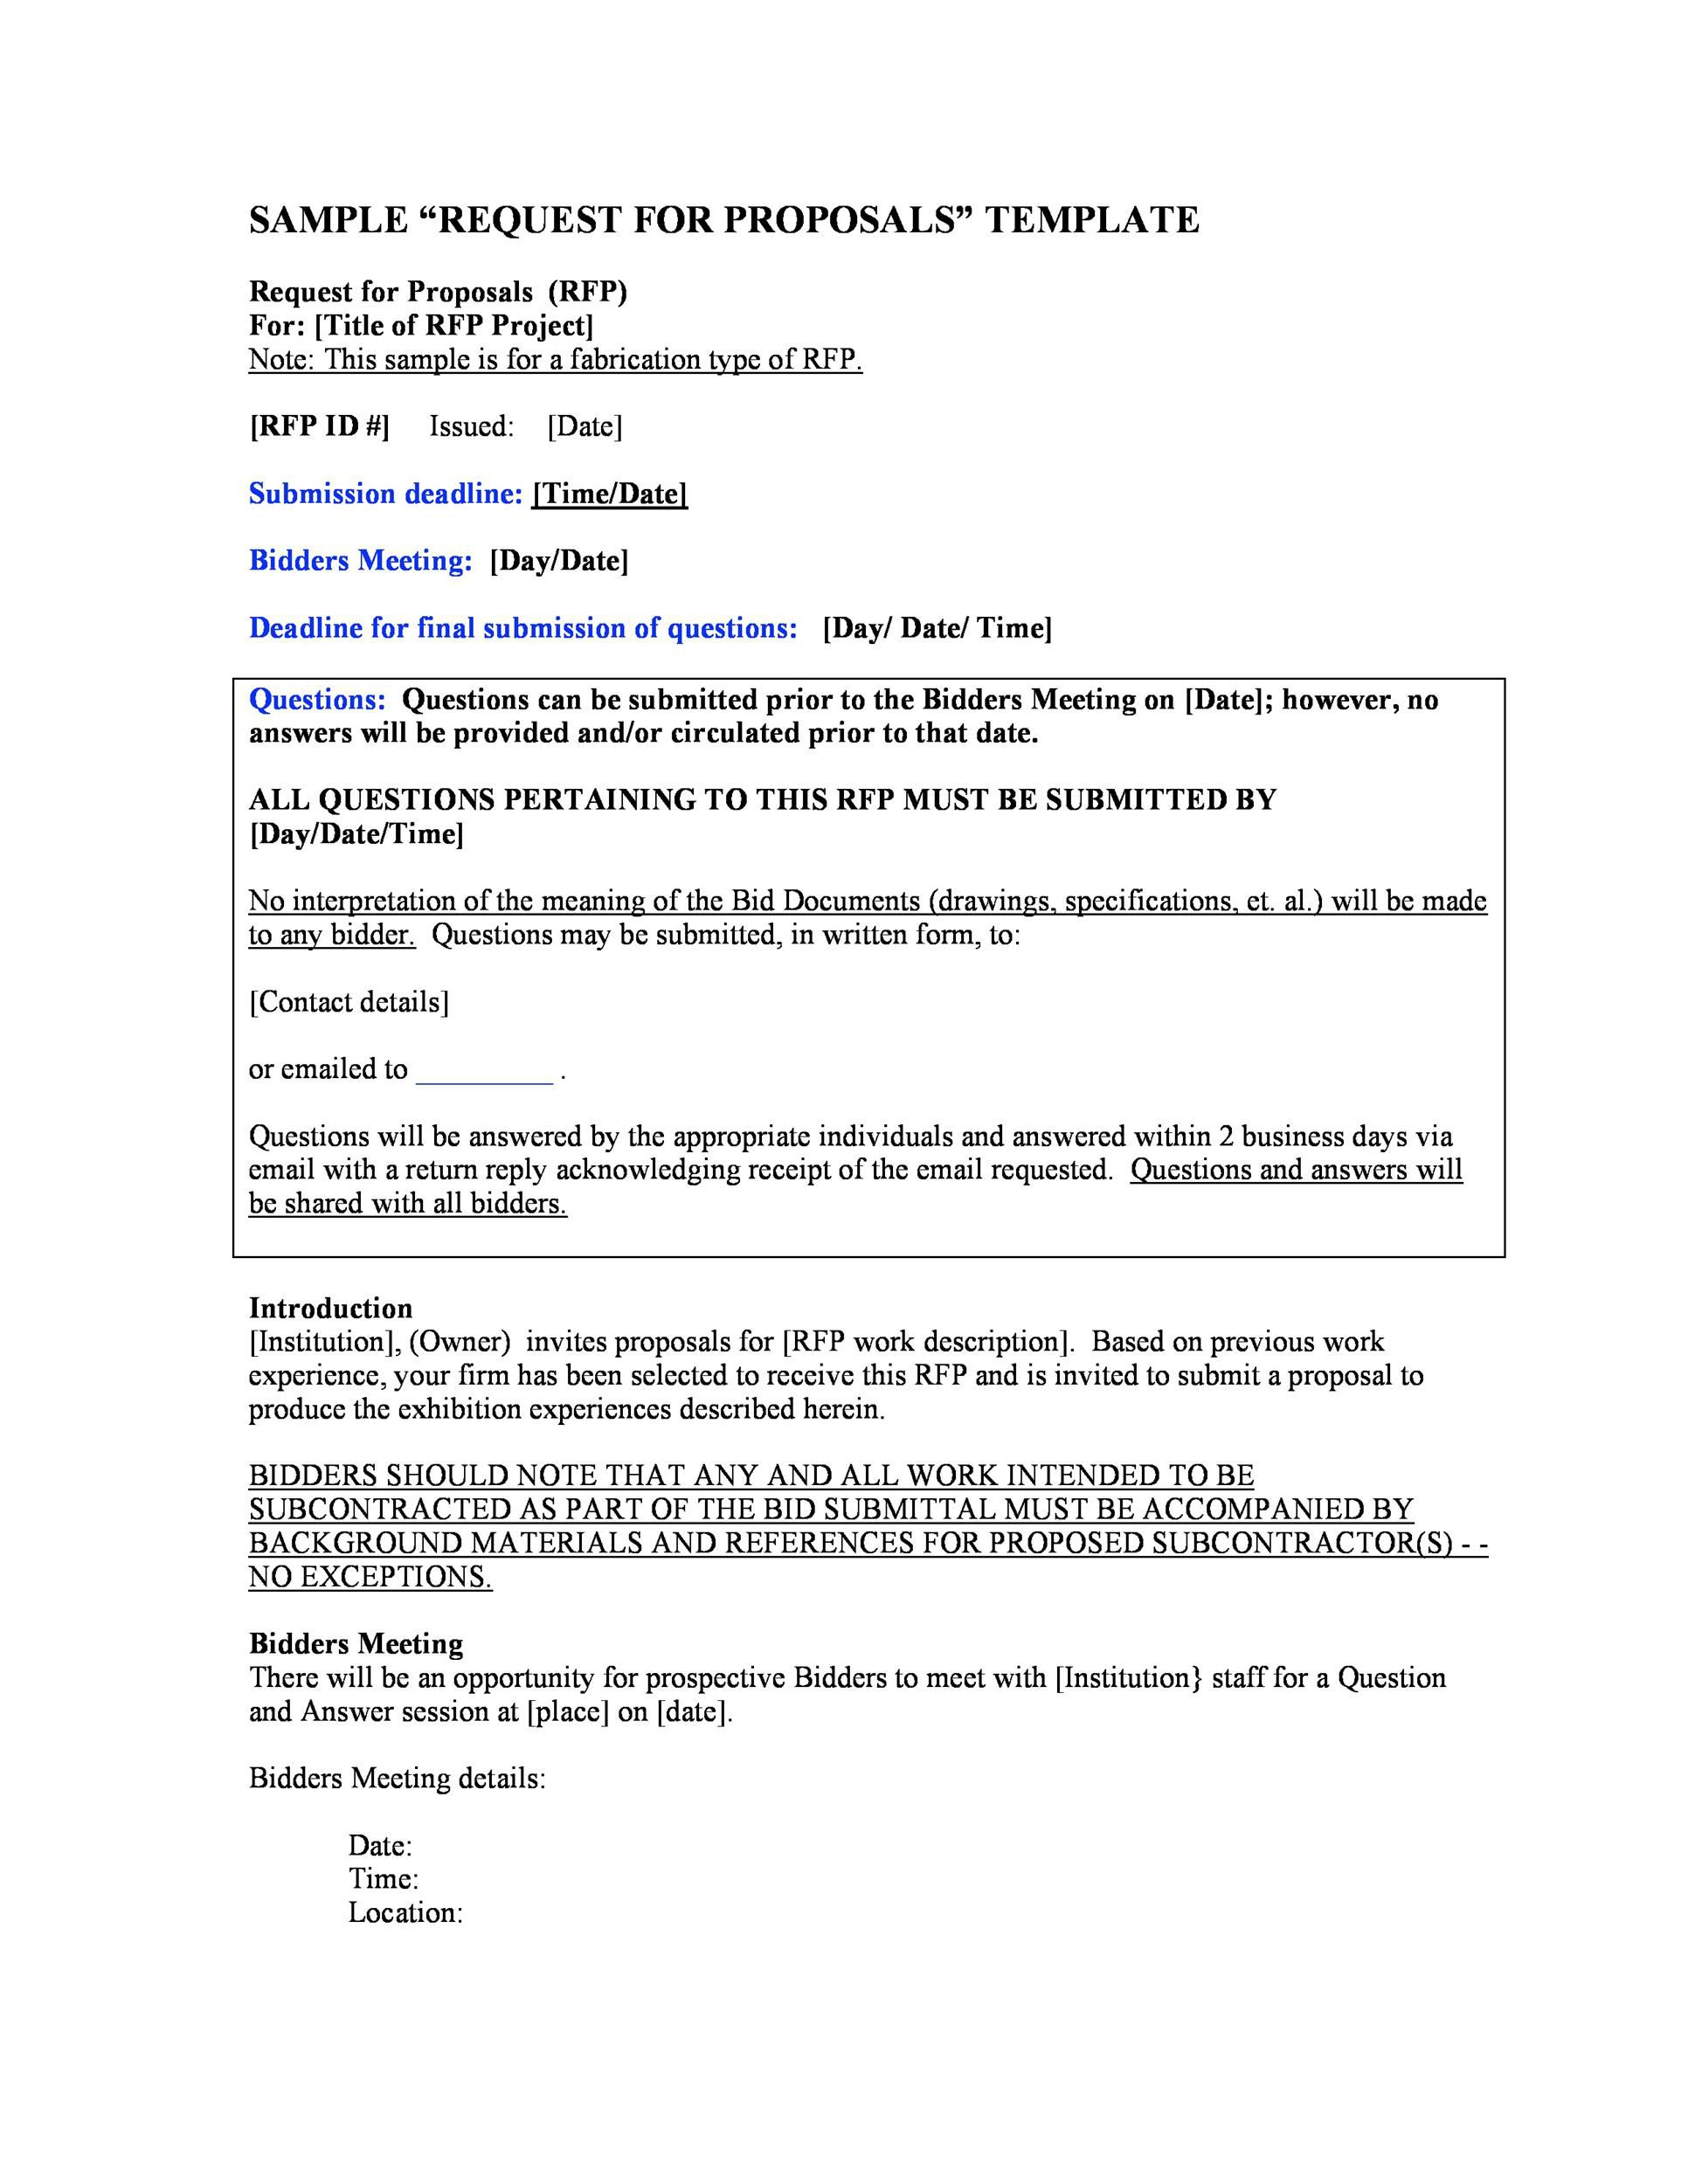 007 Magnificent Request For Proposal Response Template Free Sample Full